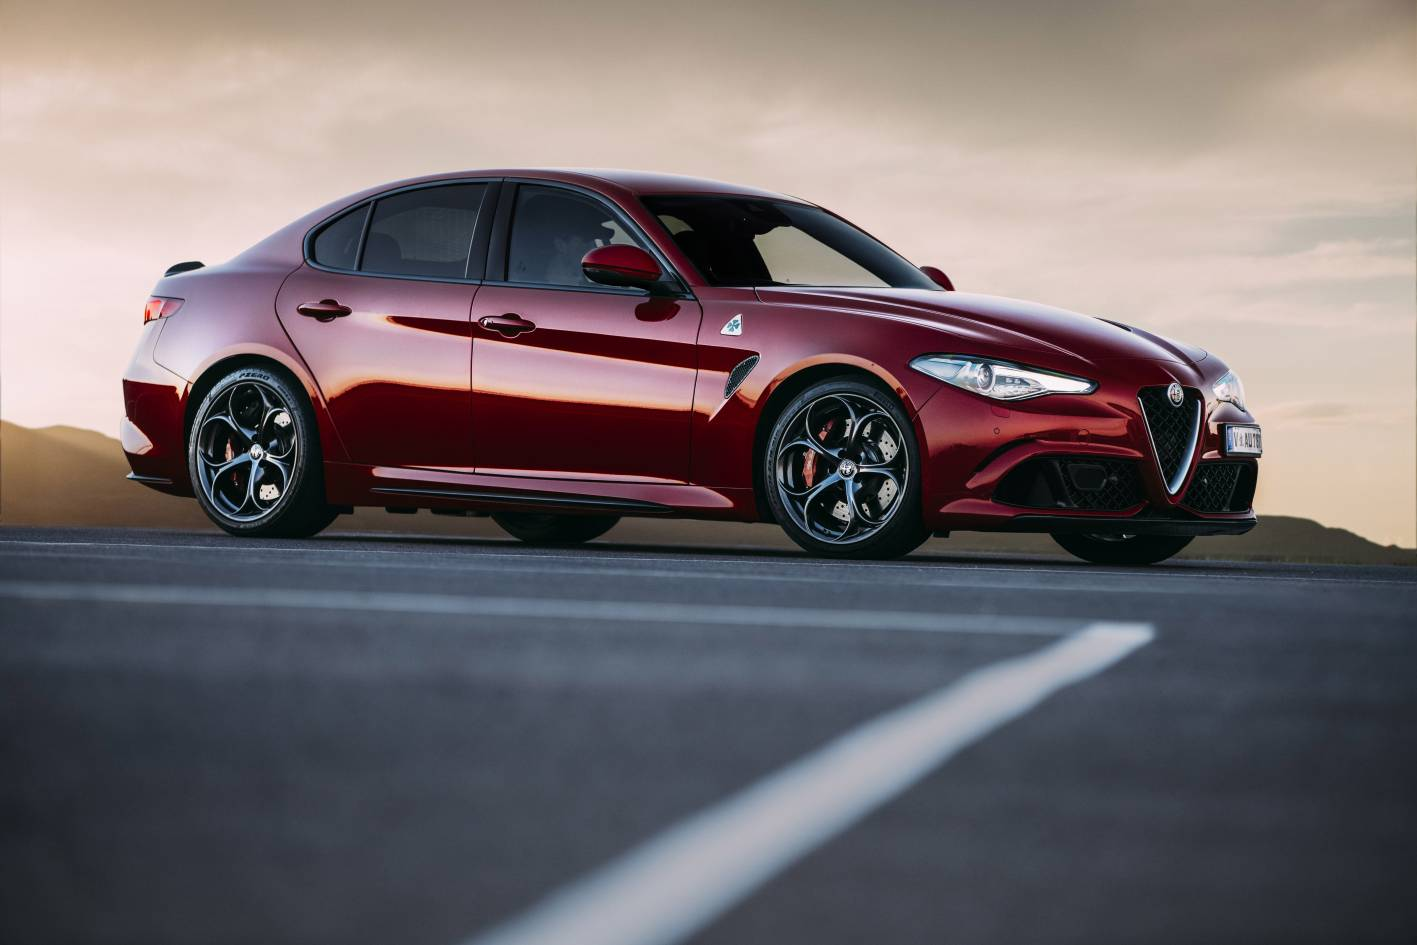 alfa romeo giulia takes on midsize premium segment from. Black Bedroom Furniture Sets. Home Design Ideas